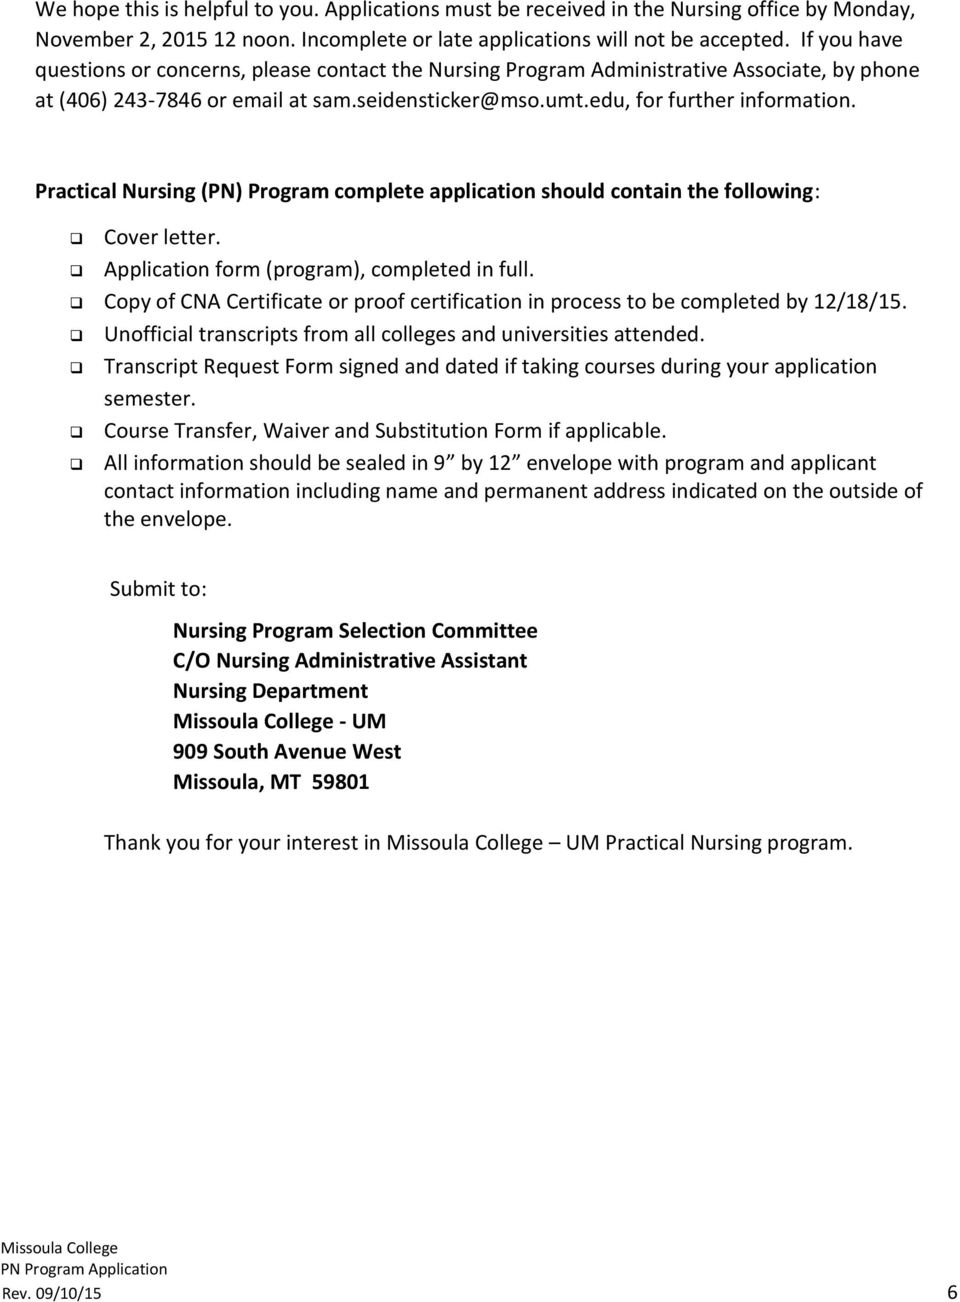 Practical Nursing (PN) Program complete application should contain the following: Cover letter. Application form (program), completed in full.